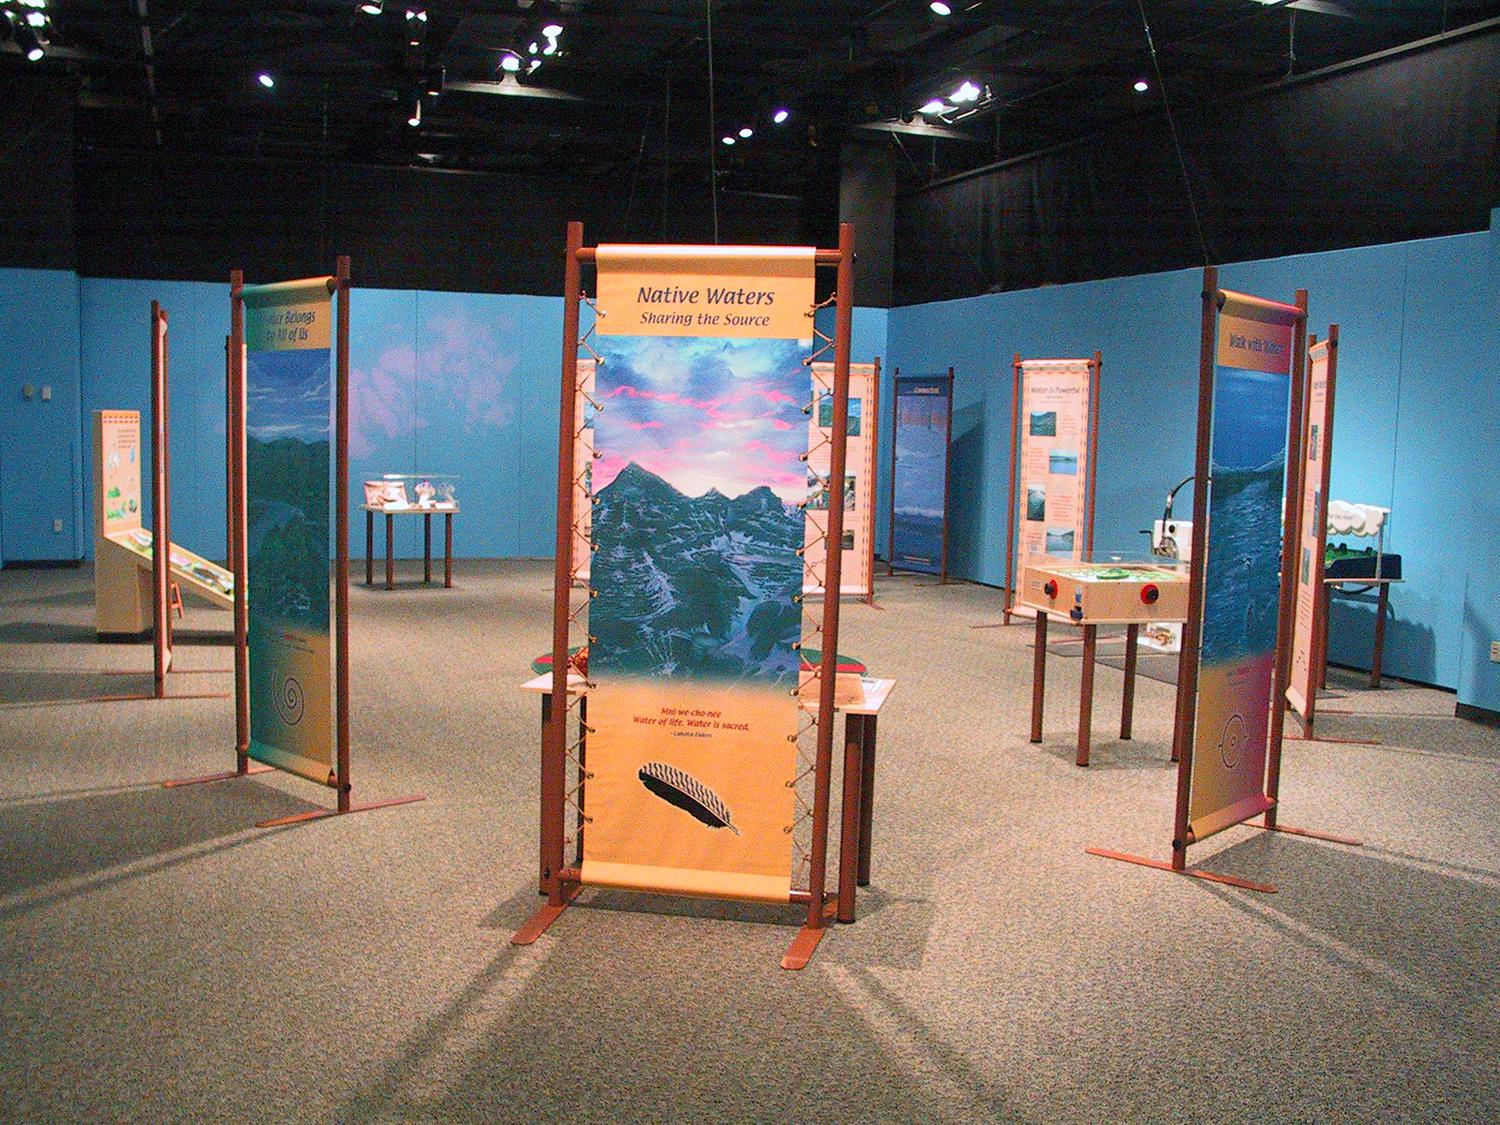 Science house at the science museum of minnesota - Native Waters Sharing The Source